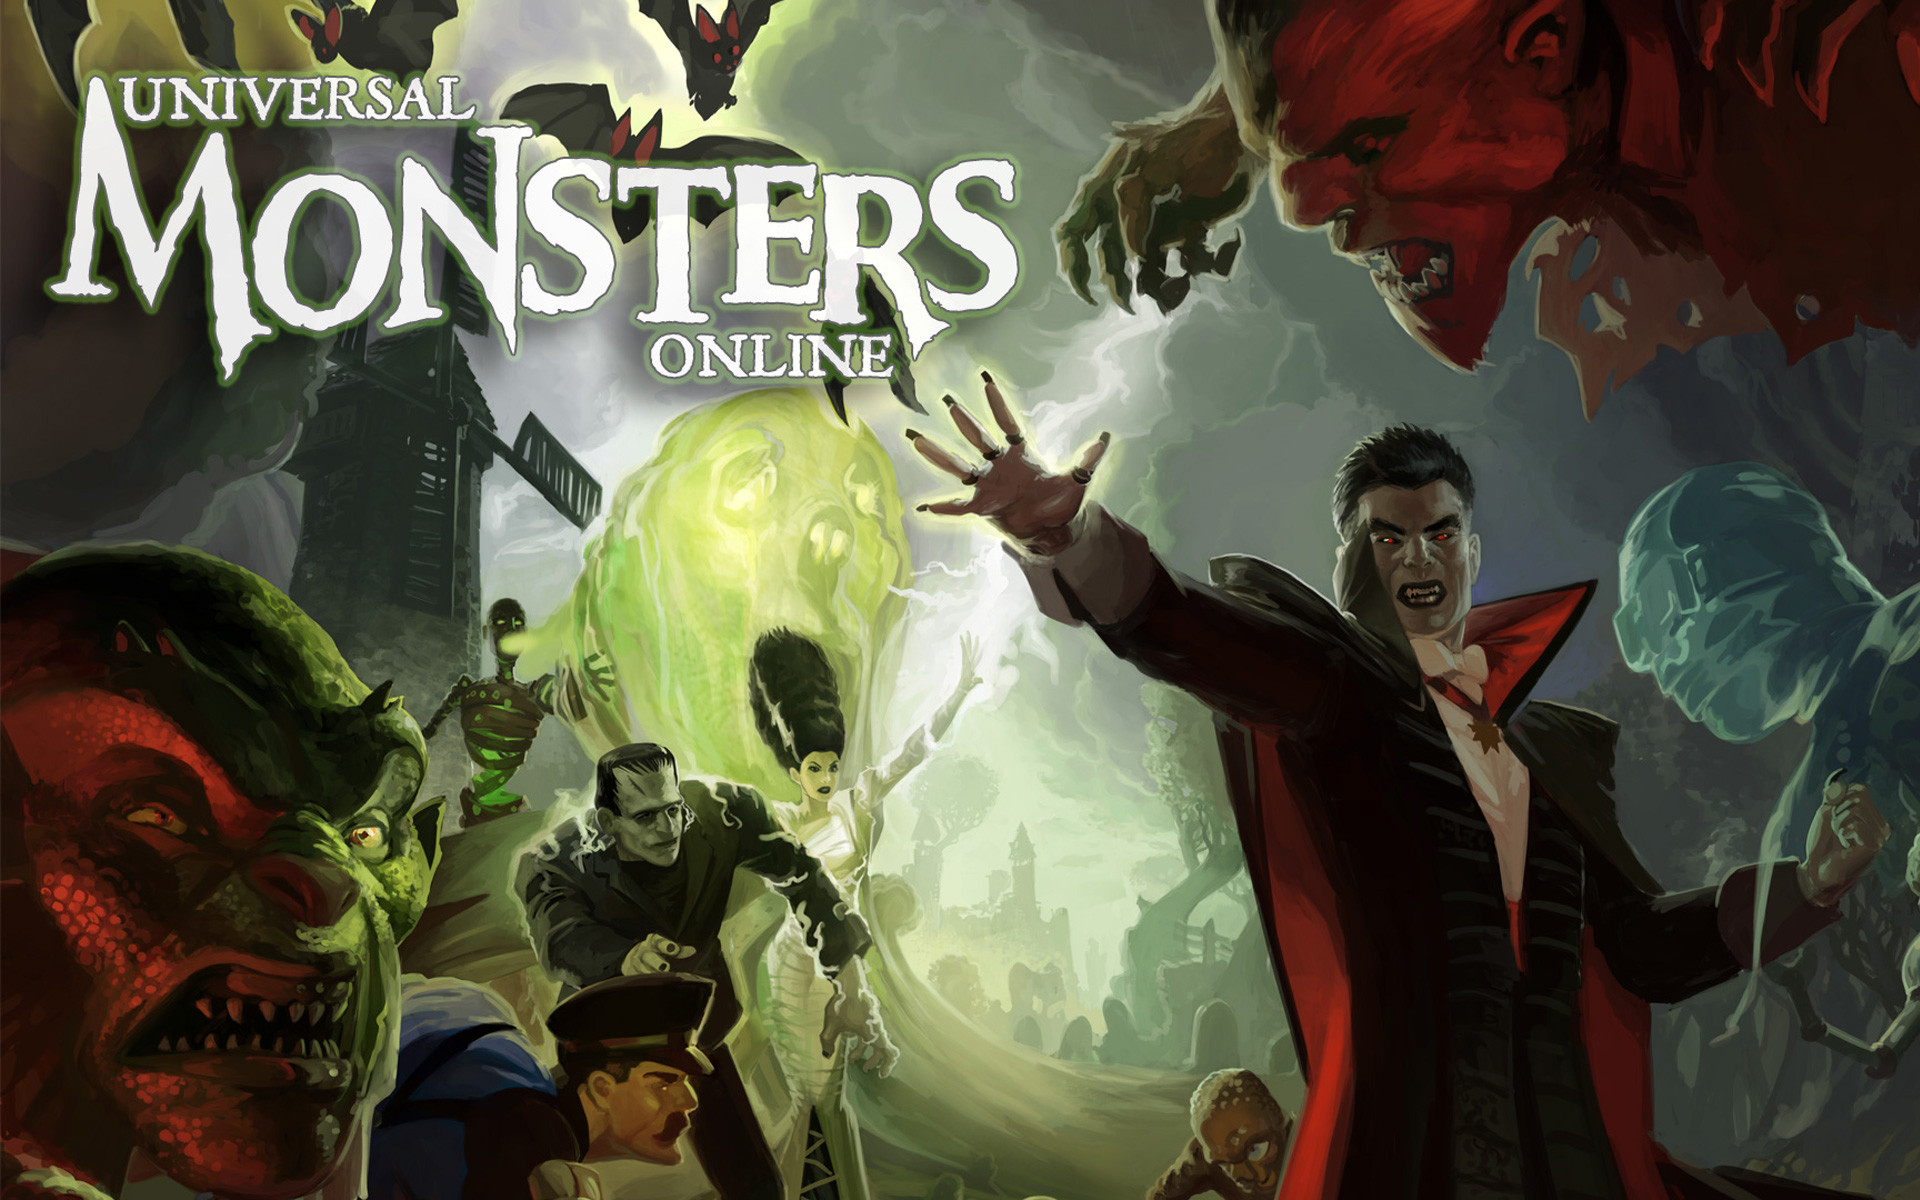 universal monsters online wallpaper, Pc Game Wallpaper, Game Wallpaper .